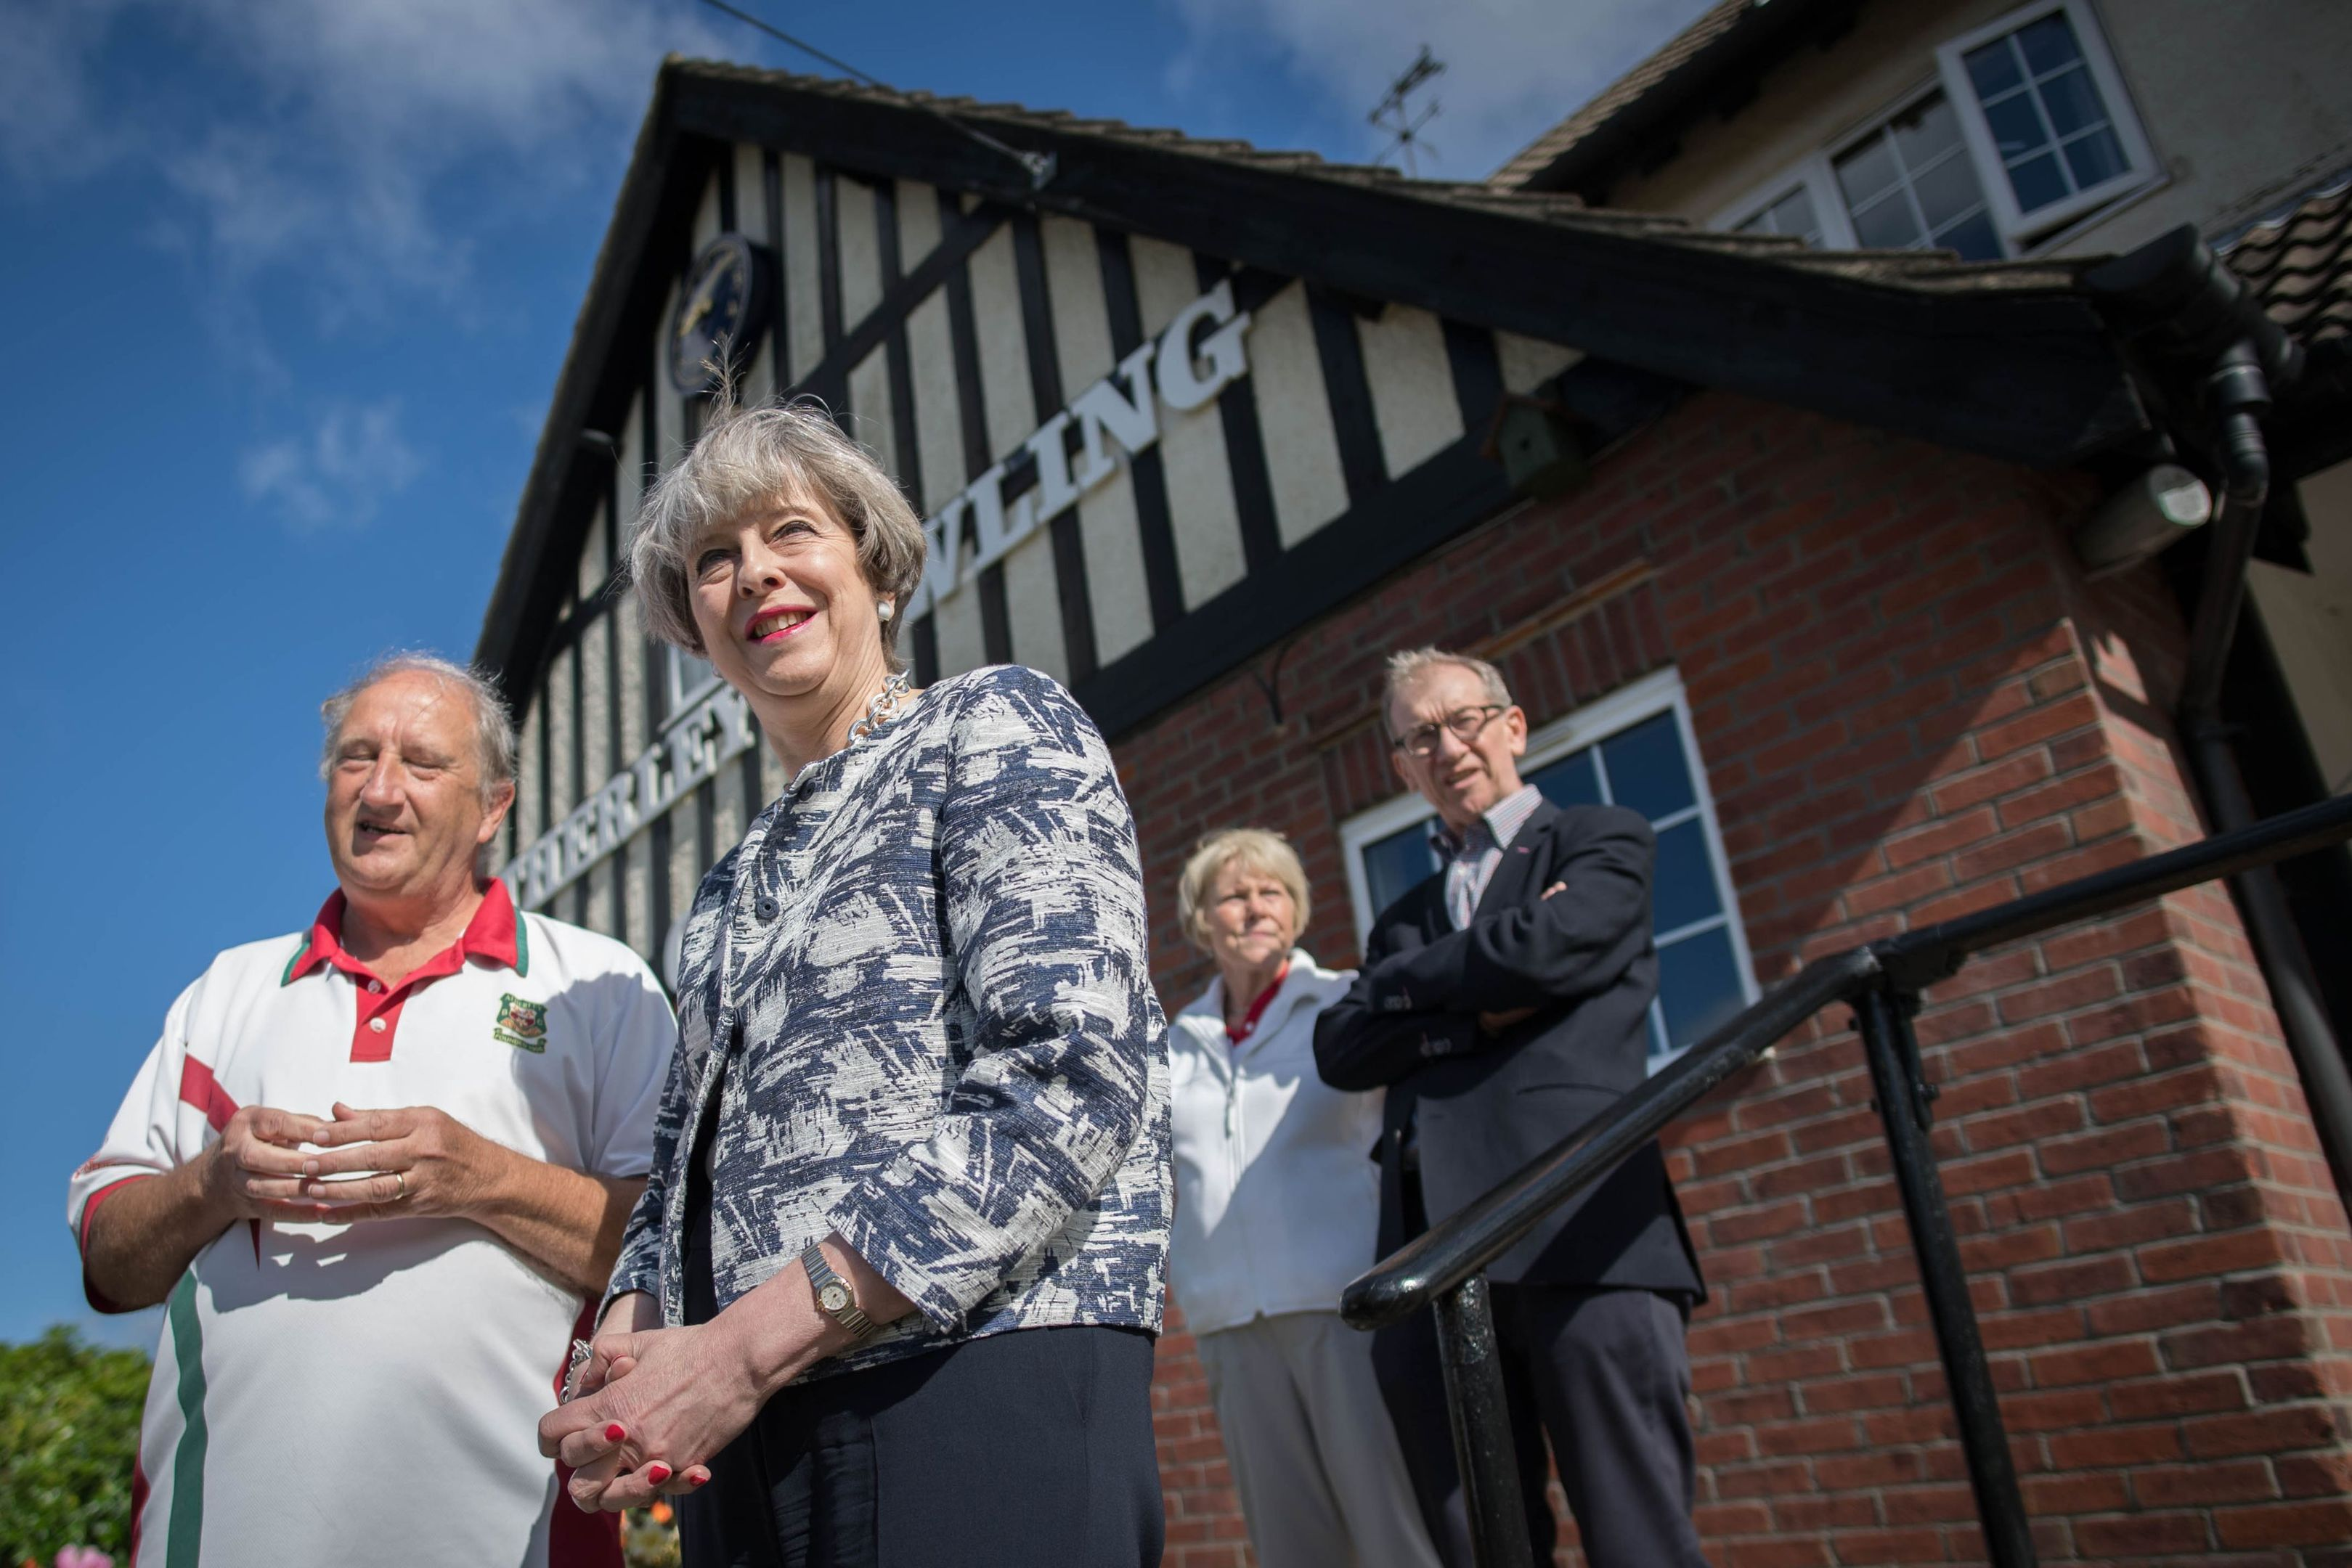 Prime Minister Theresa May (front right) visits Atherley Bowling Club in Southampton, with her husband Philip (back right) while on the General Election campaign trail. (Stefan Rousseau/PA Wire)